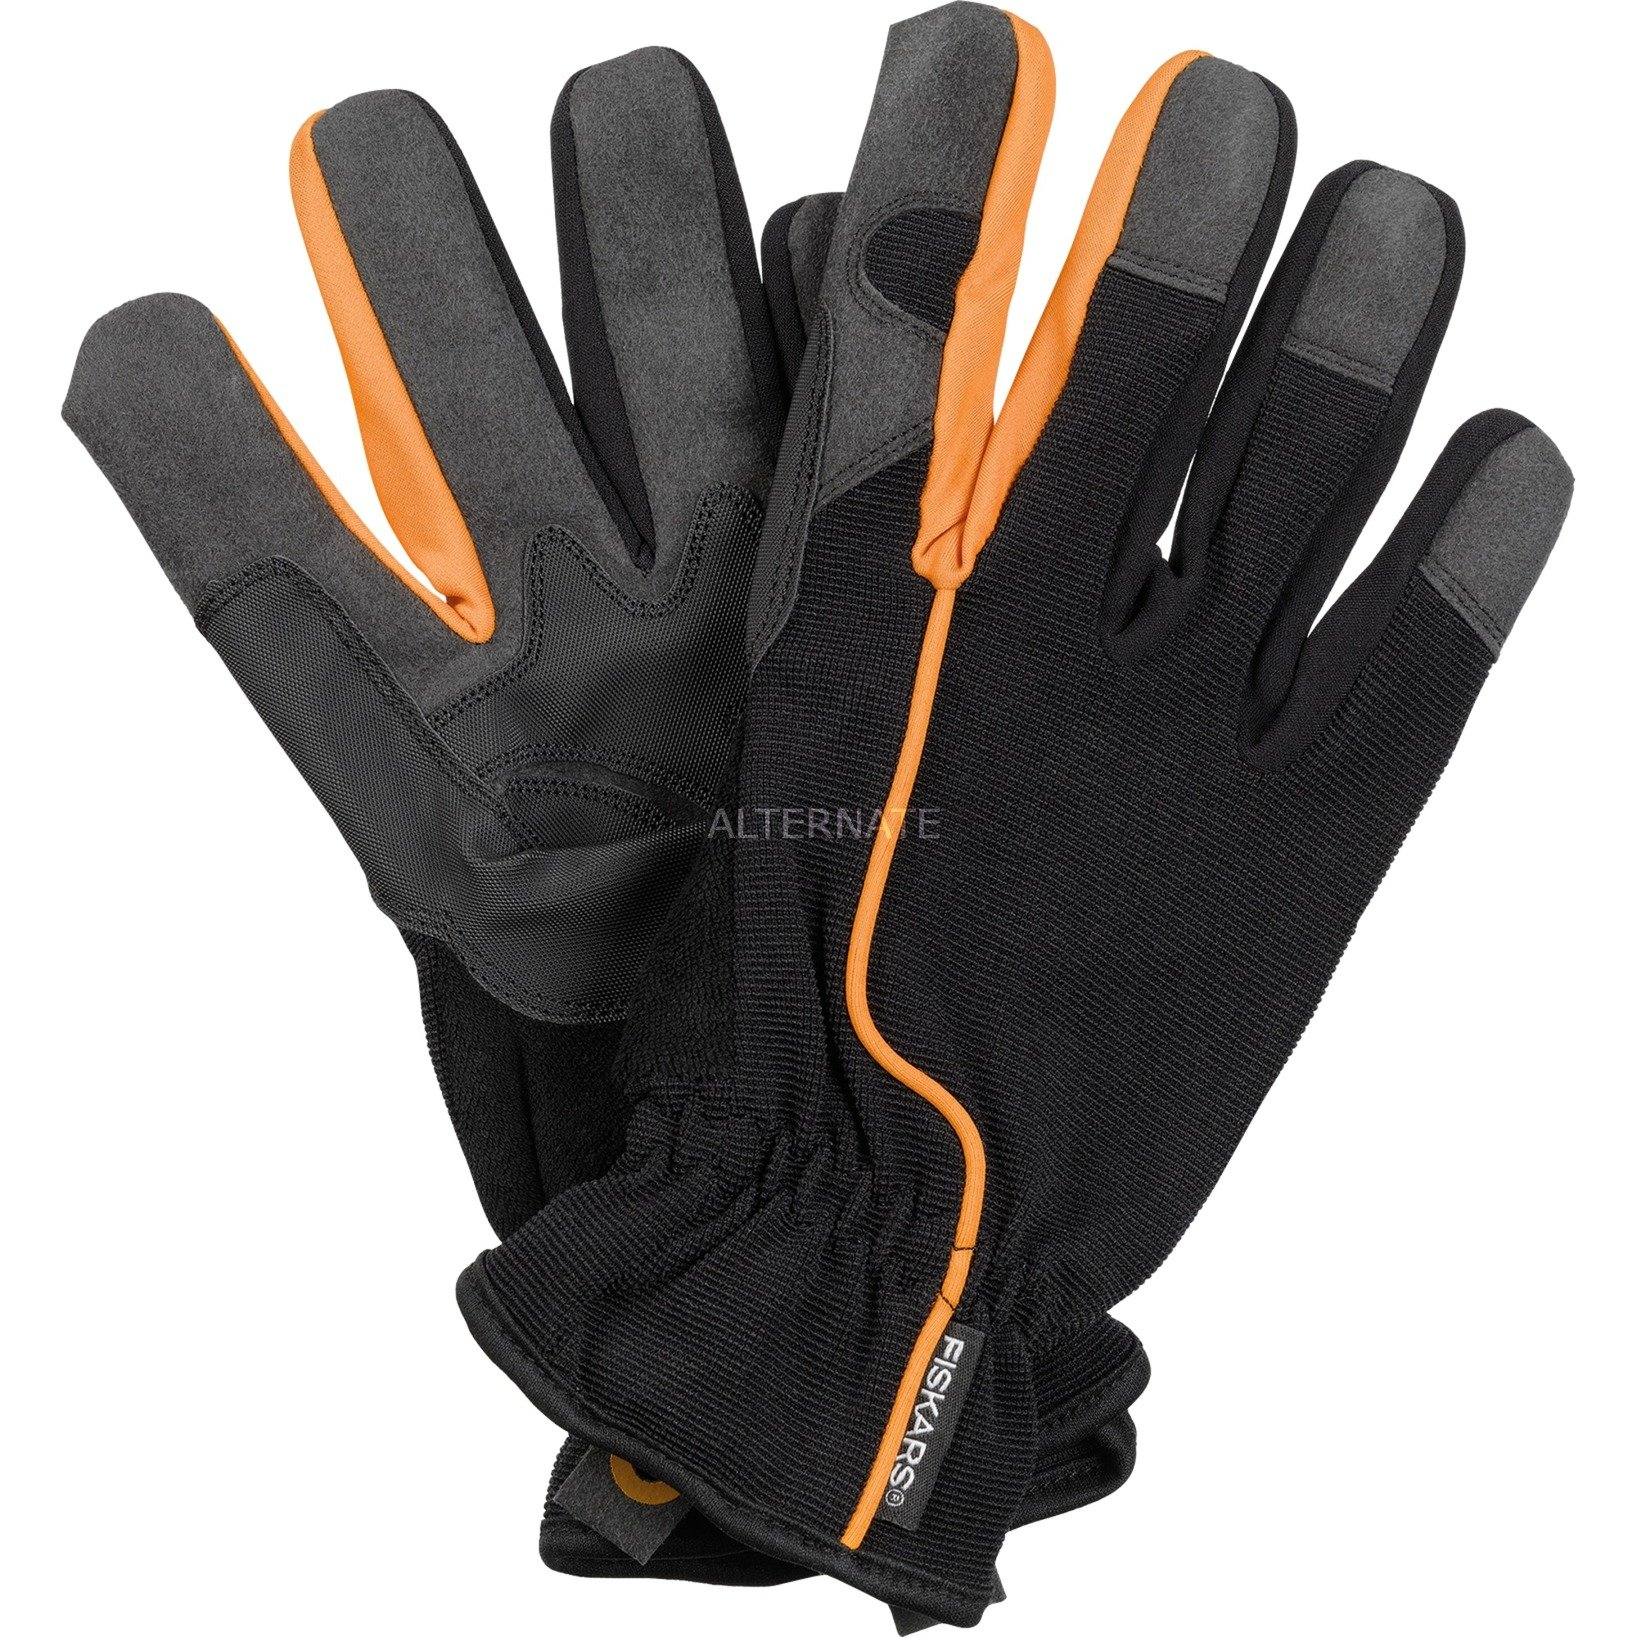 1003478, Guantes